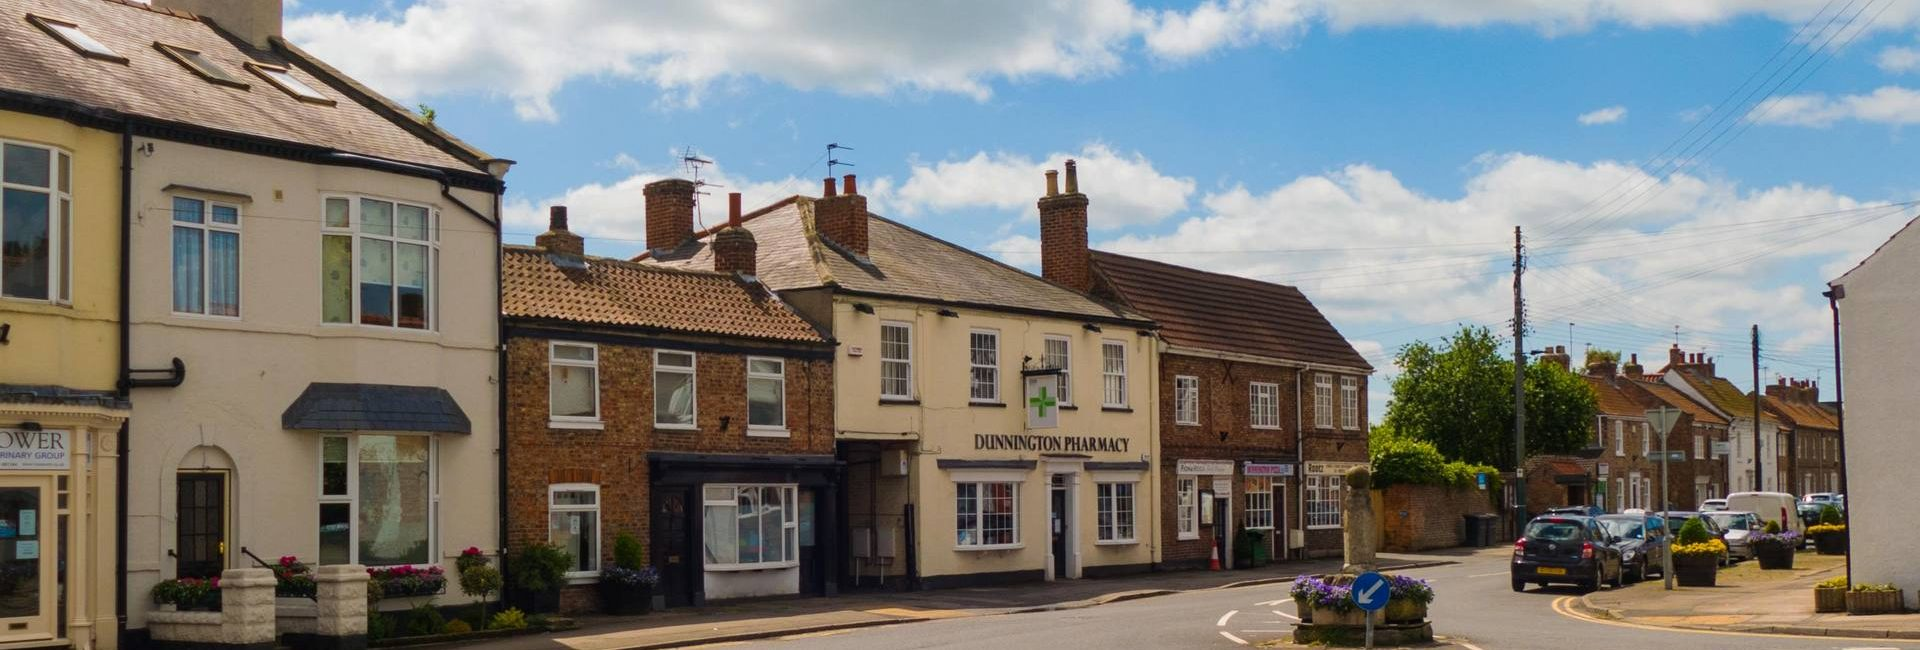 Photo of the heart of Dunnington village near York, home of Fabric Gallery and Interiors.